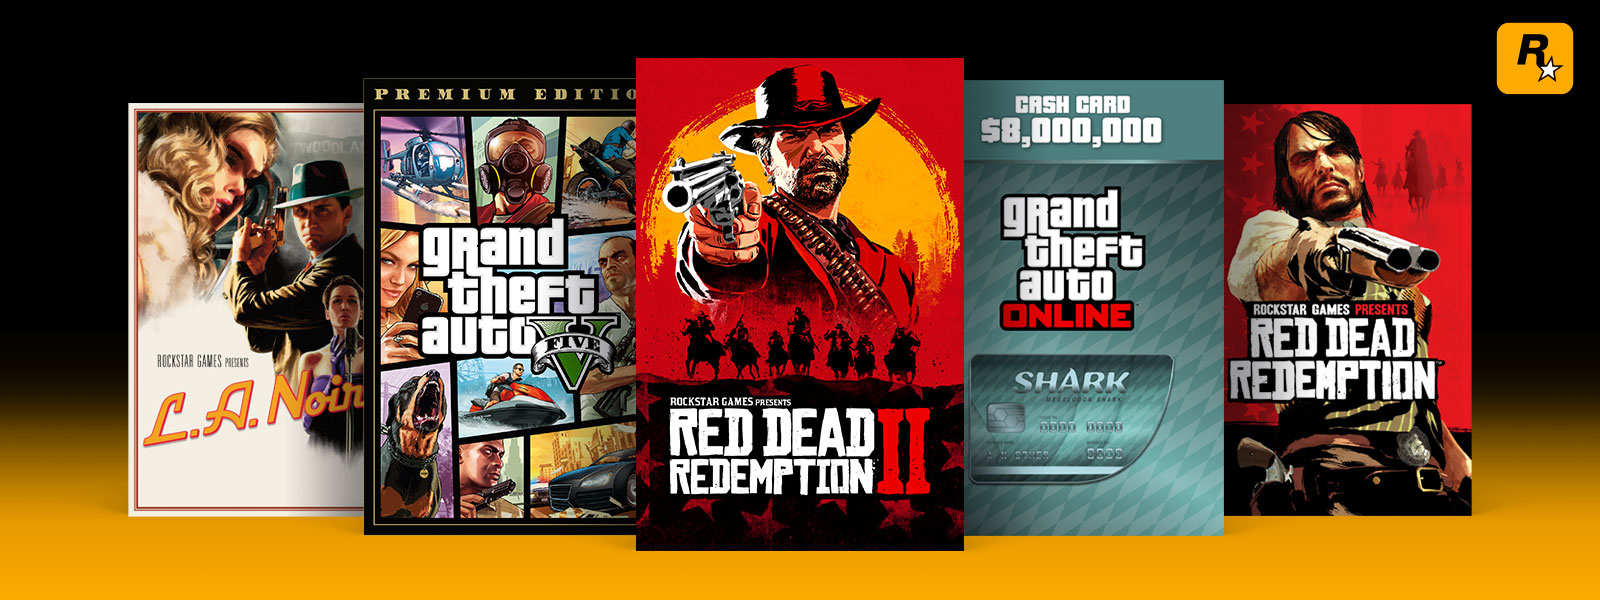 Collage of Rockstar games on sale, including Red Dead Redemption 2, Grand Theft Auto 5, and L.A. Noir